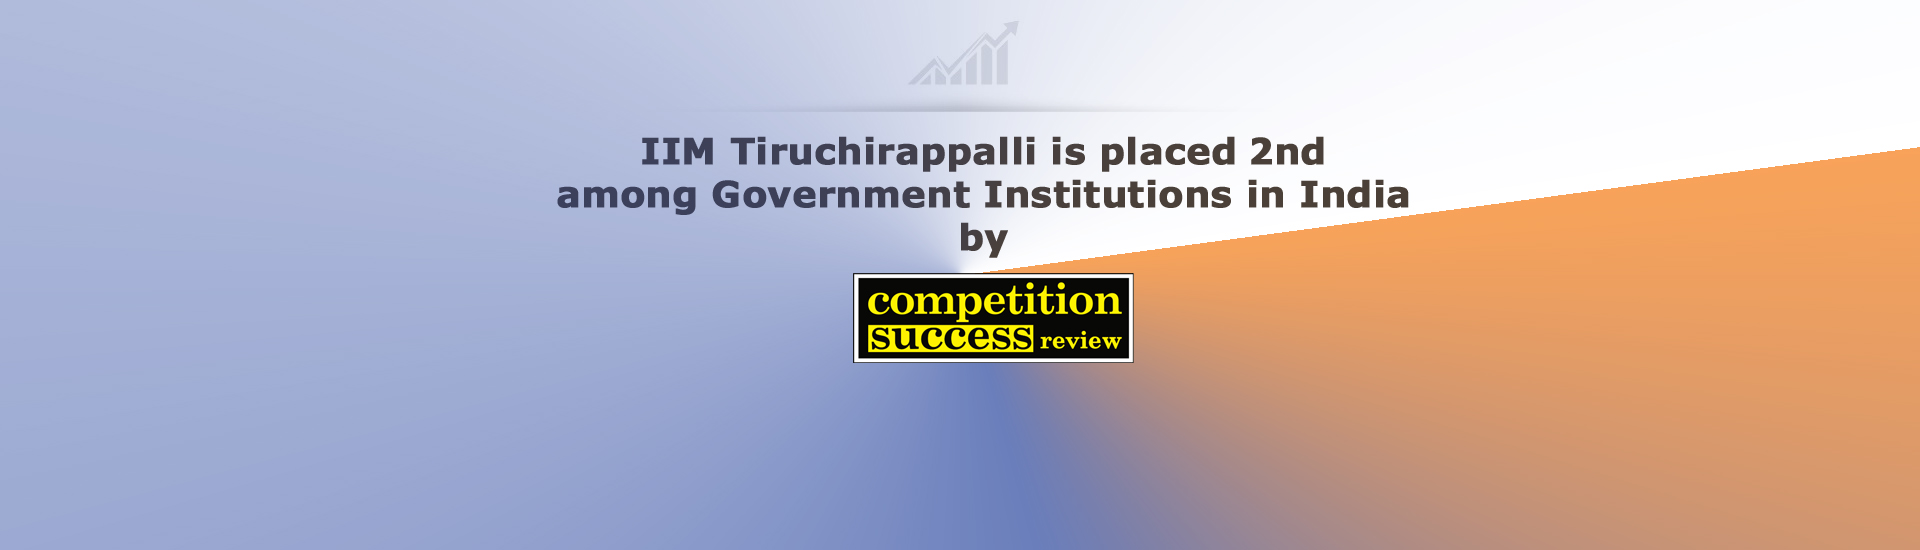 IIM Trichy has been ranked 2nd among Government Institutions